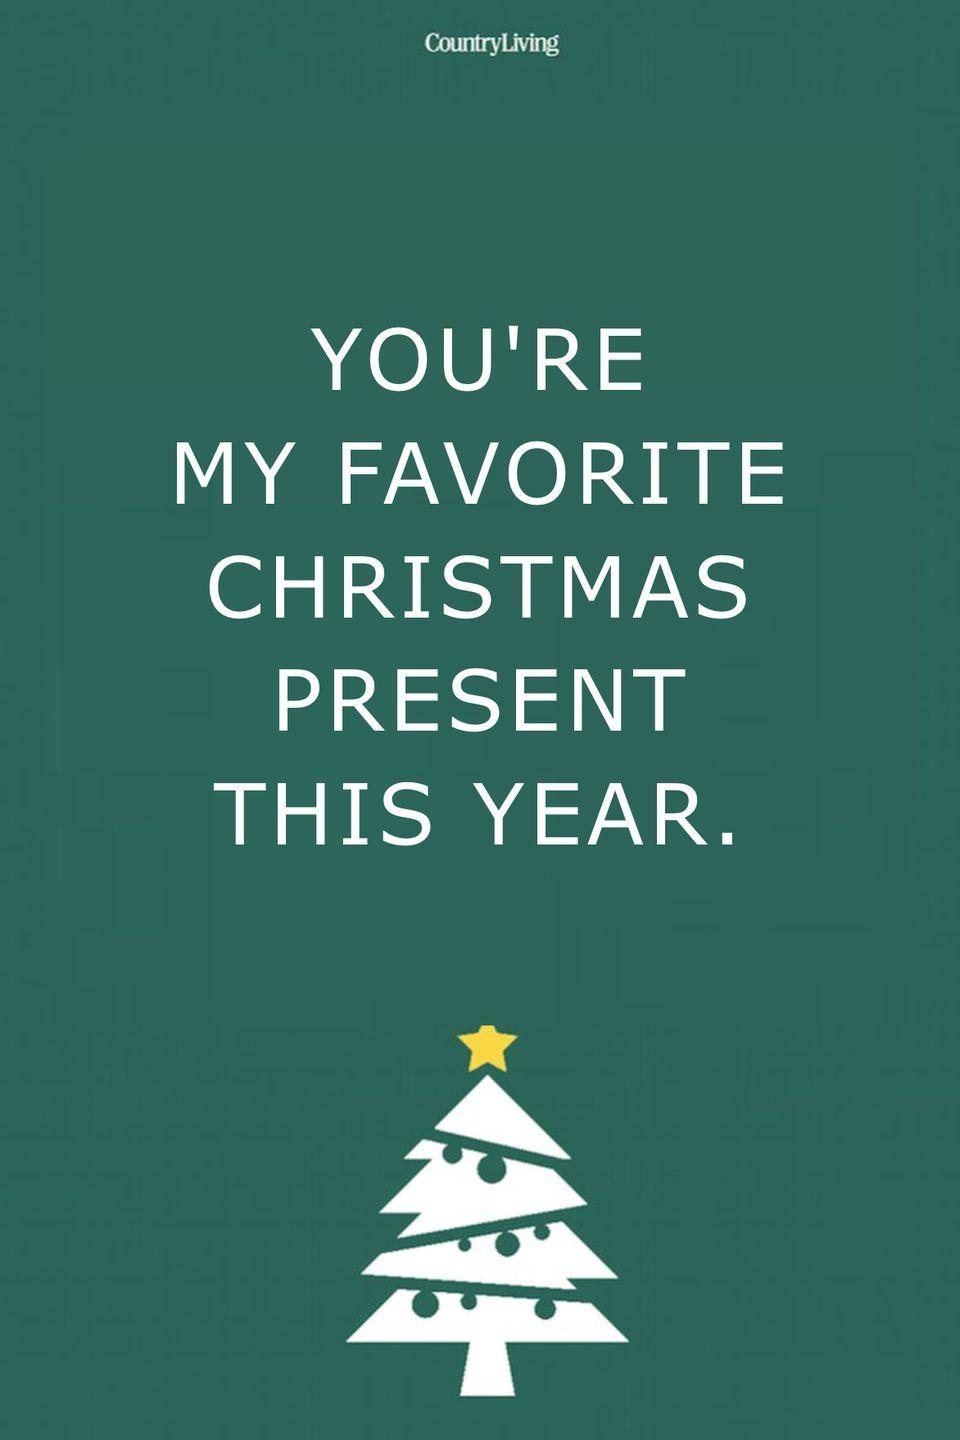 <p>You're my favorite Christmas present this year.</p>